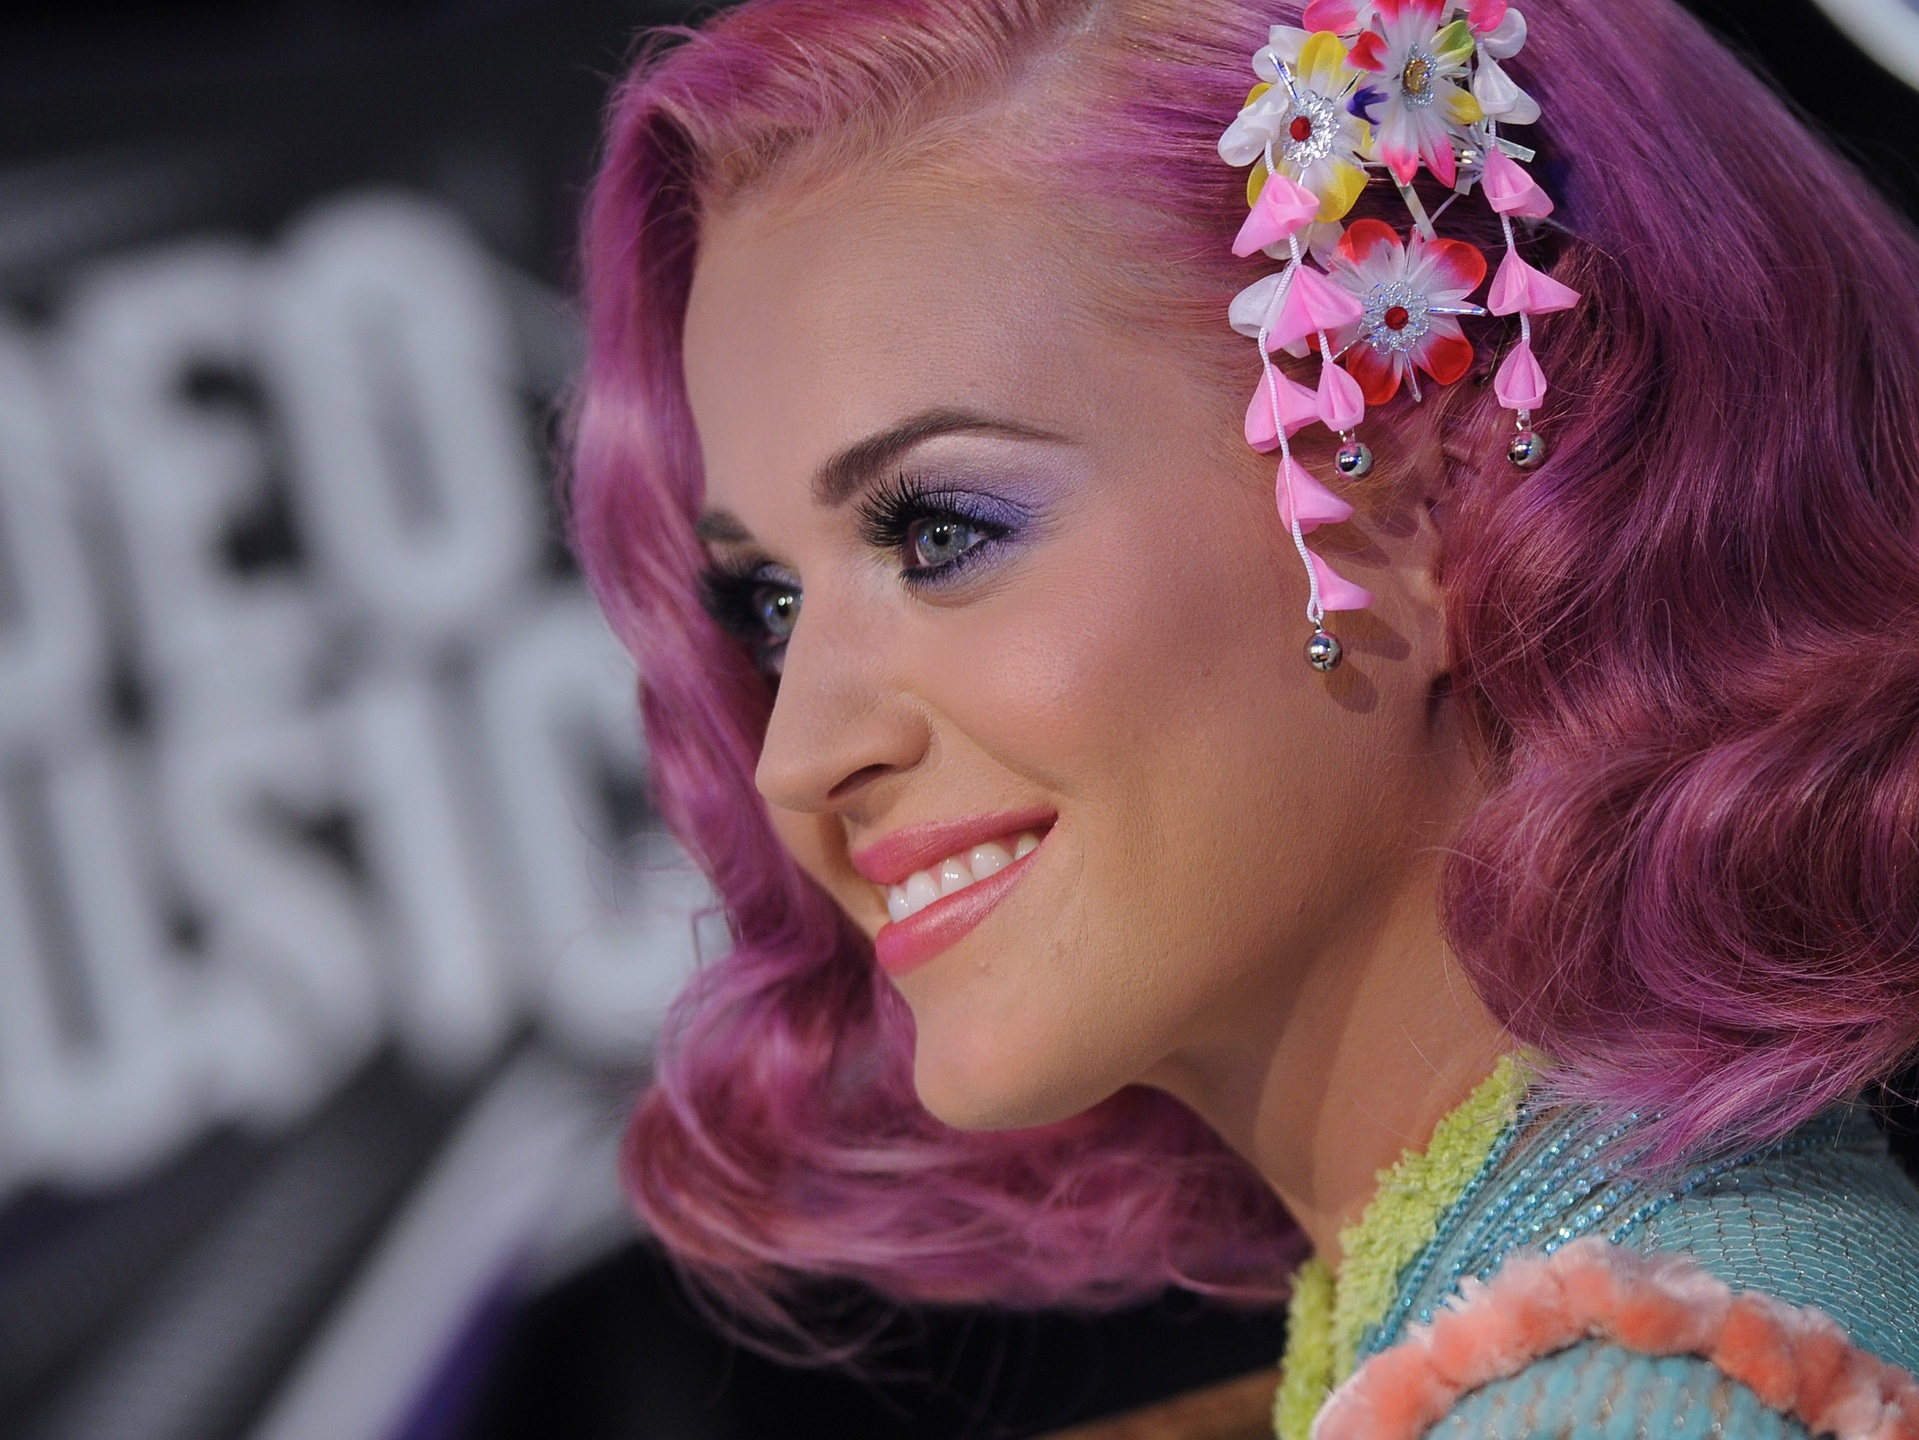 Katy Perry Wallpaper 38